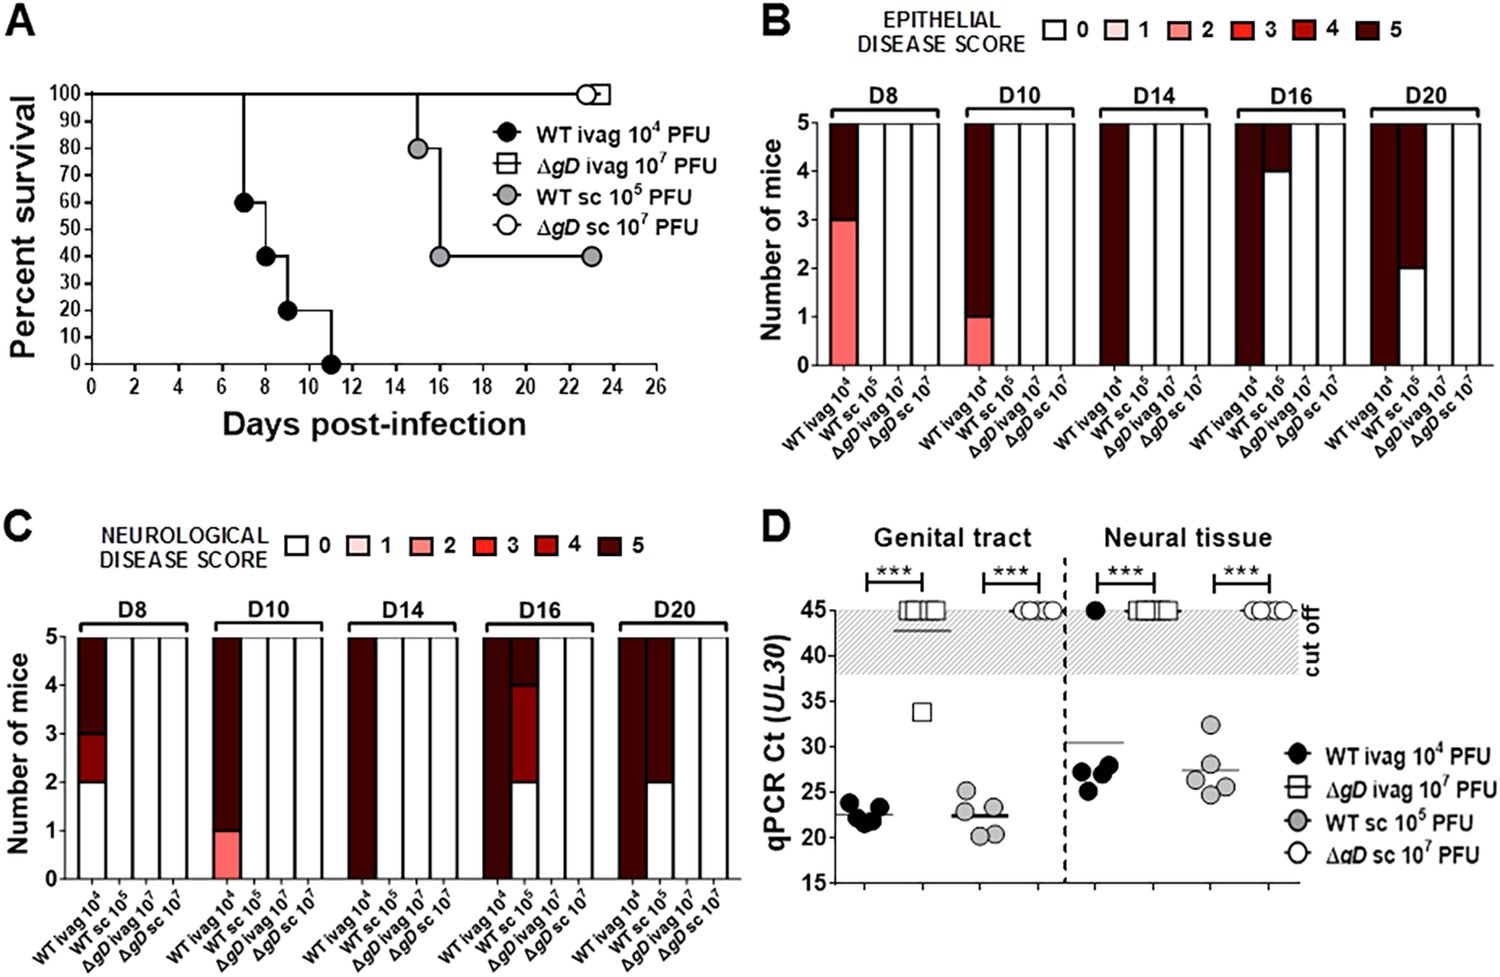 Herpes simplex type 2 virus deleted in glycoprotein D protects